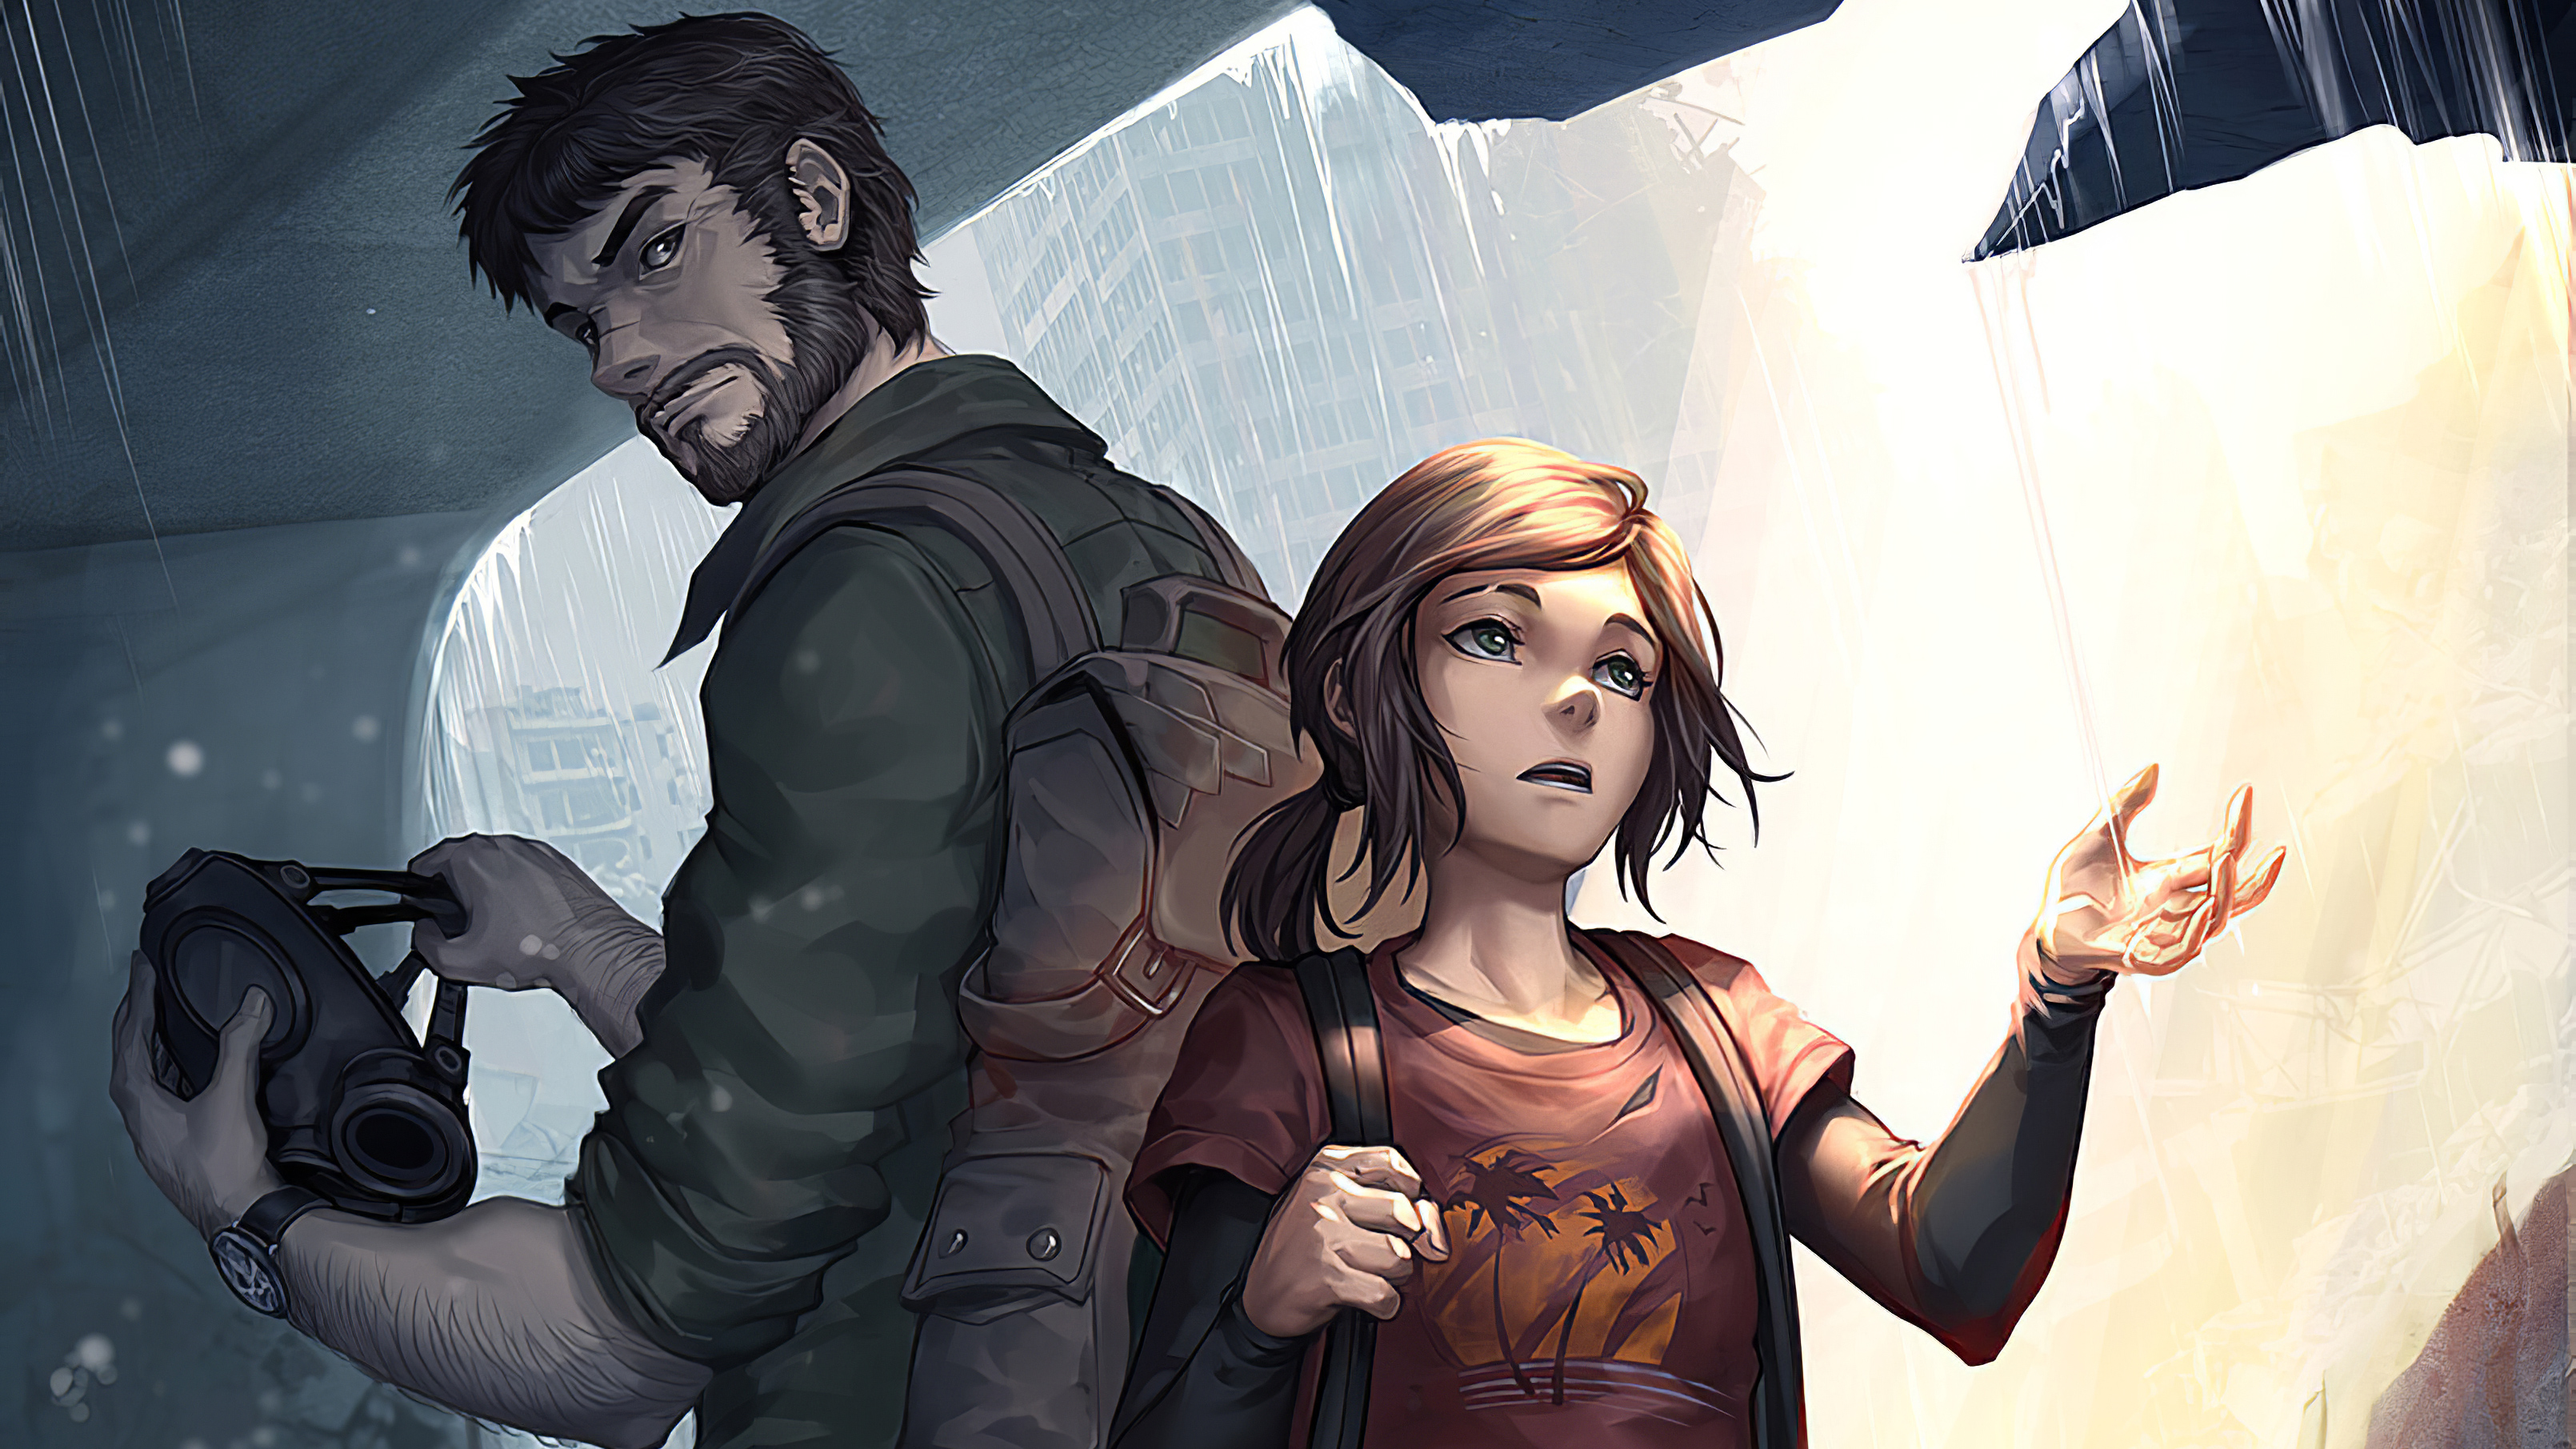 Joel And Ellie The Last Of Us Hd Games 4k Wallpapers Images Backgrounds Photos And Pictures